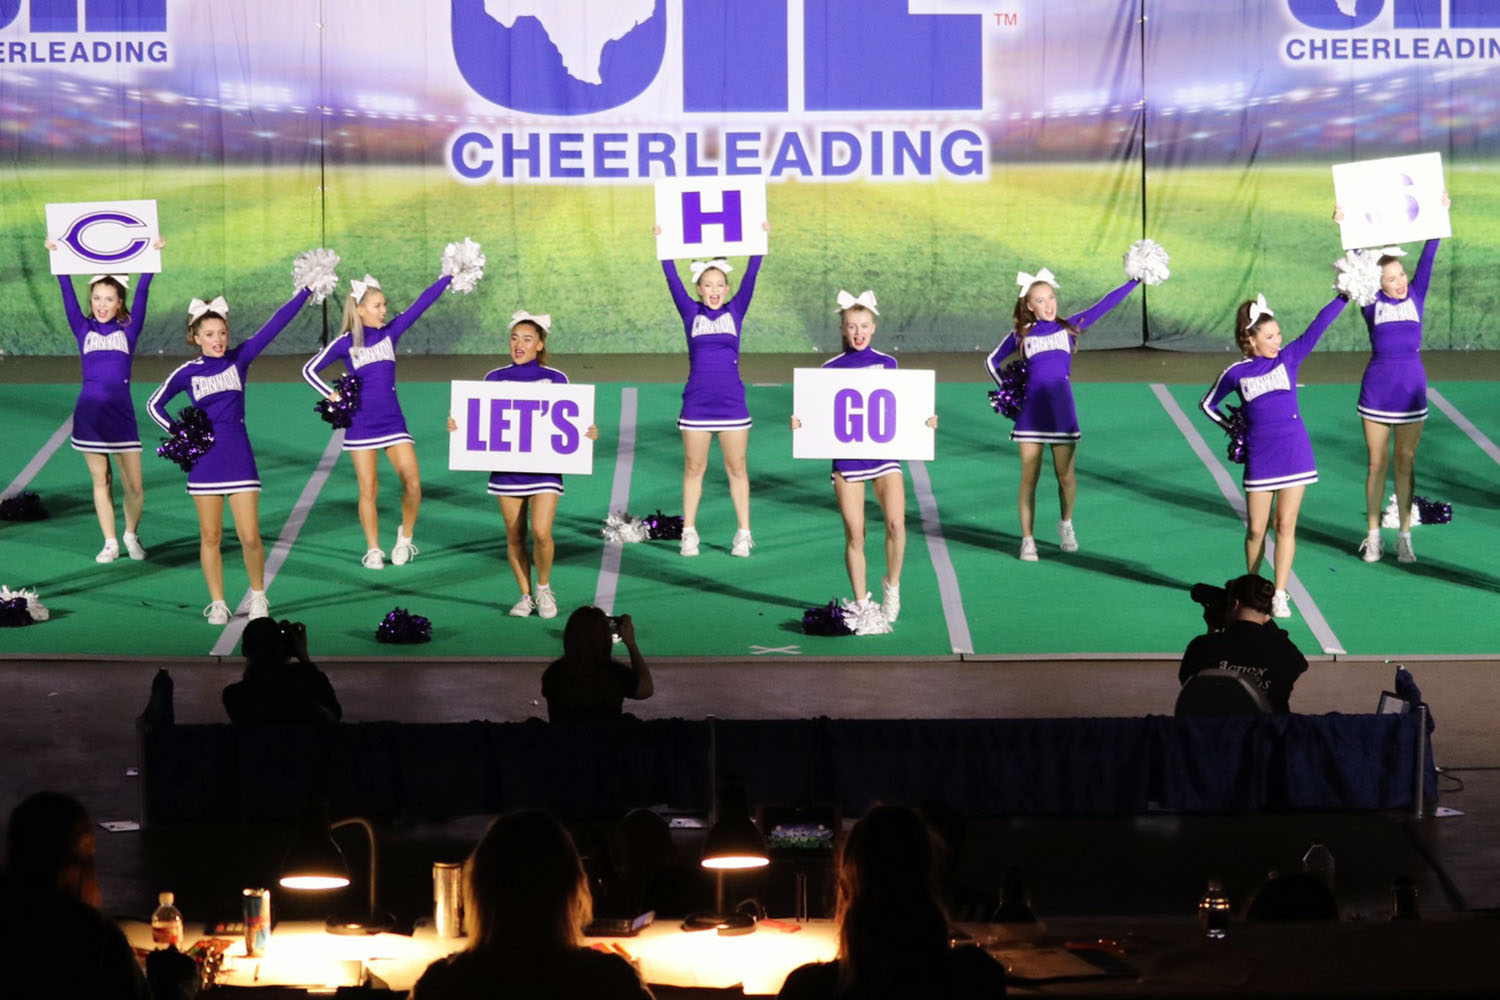 The cheerleaders perform for the judges in the UIL spirit state meet.